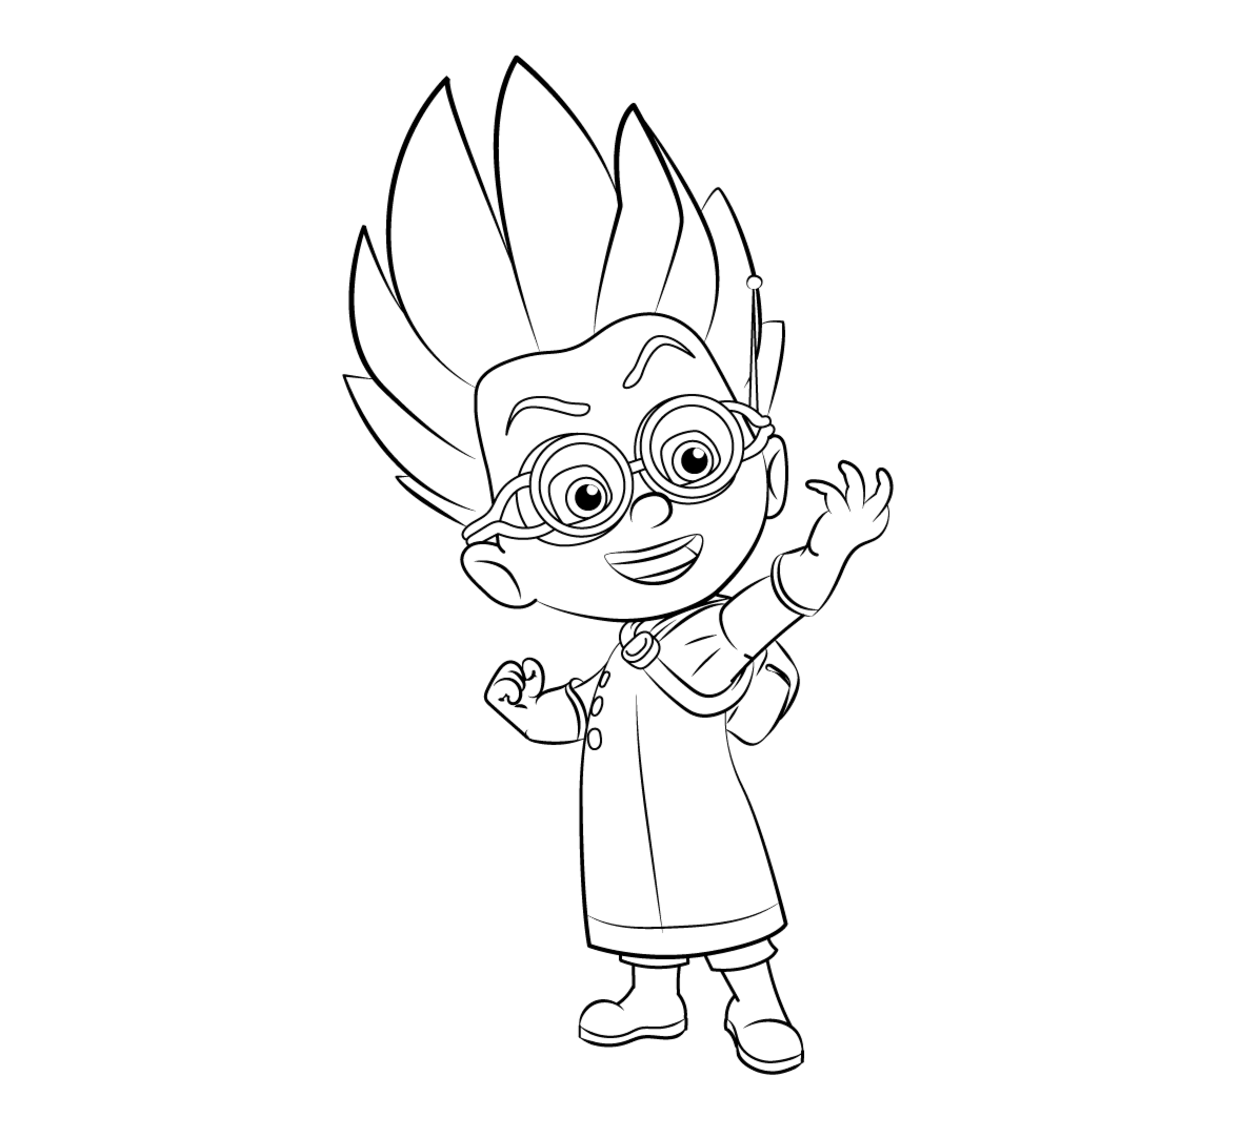 Pj Masks Coloring Pages To Download And Print For Free Colouring